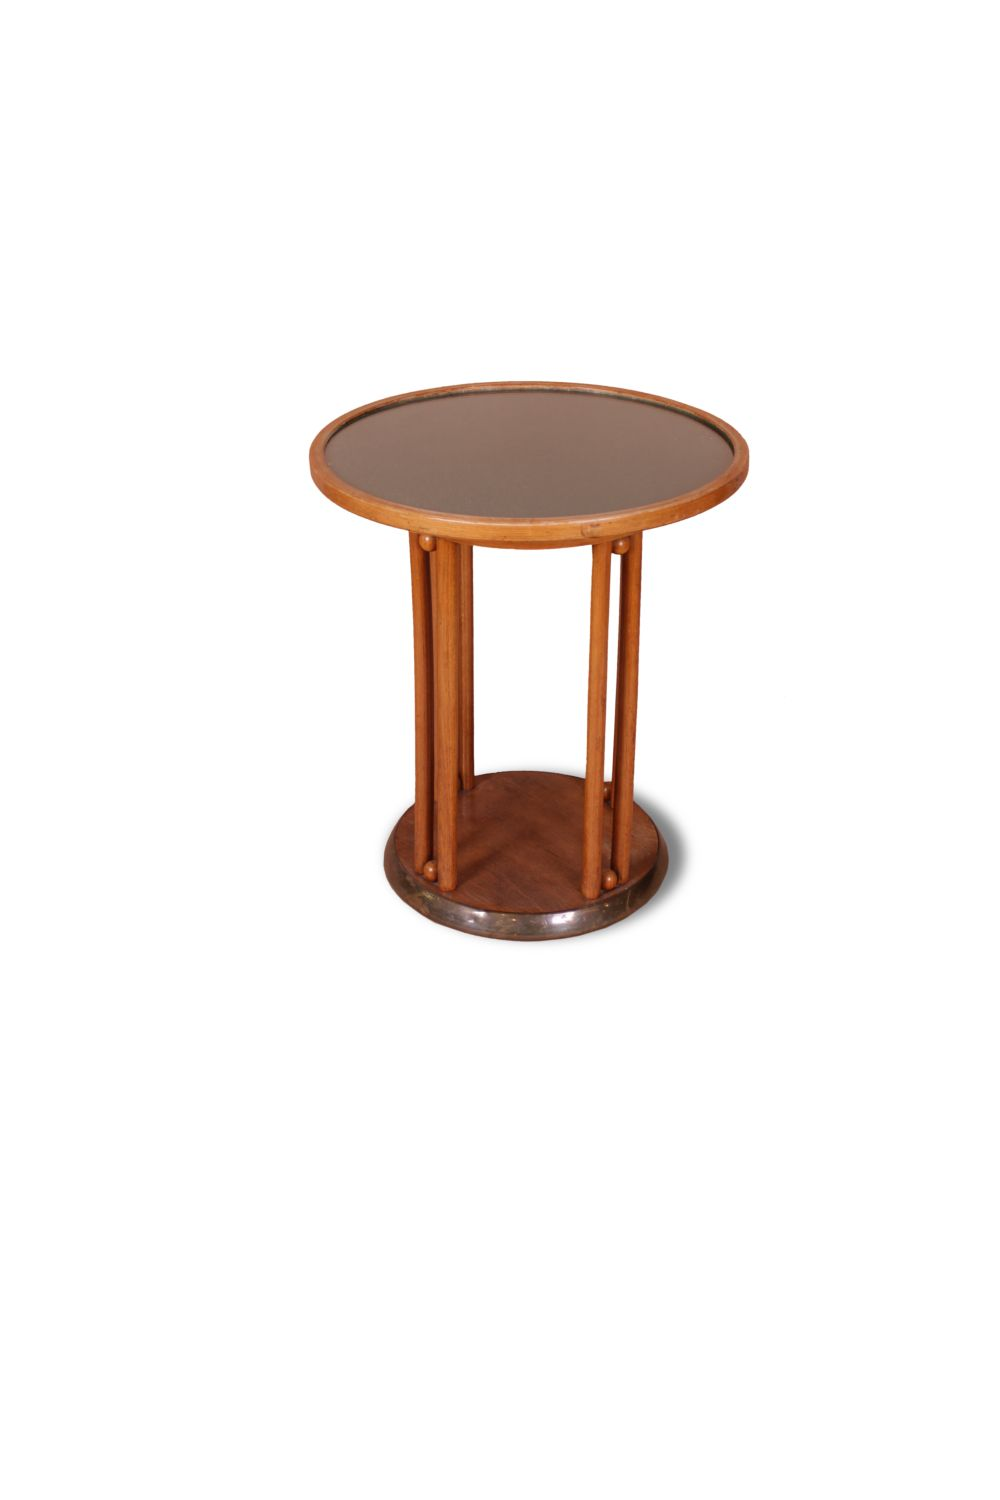 #119 designed by Josef Hoffmann Art Nouveau Table | Jugendstiltisch Image